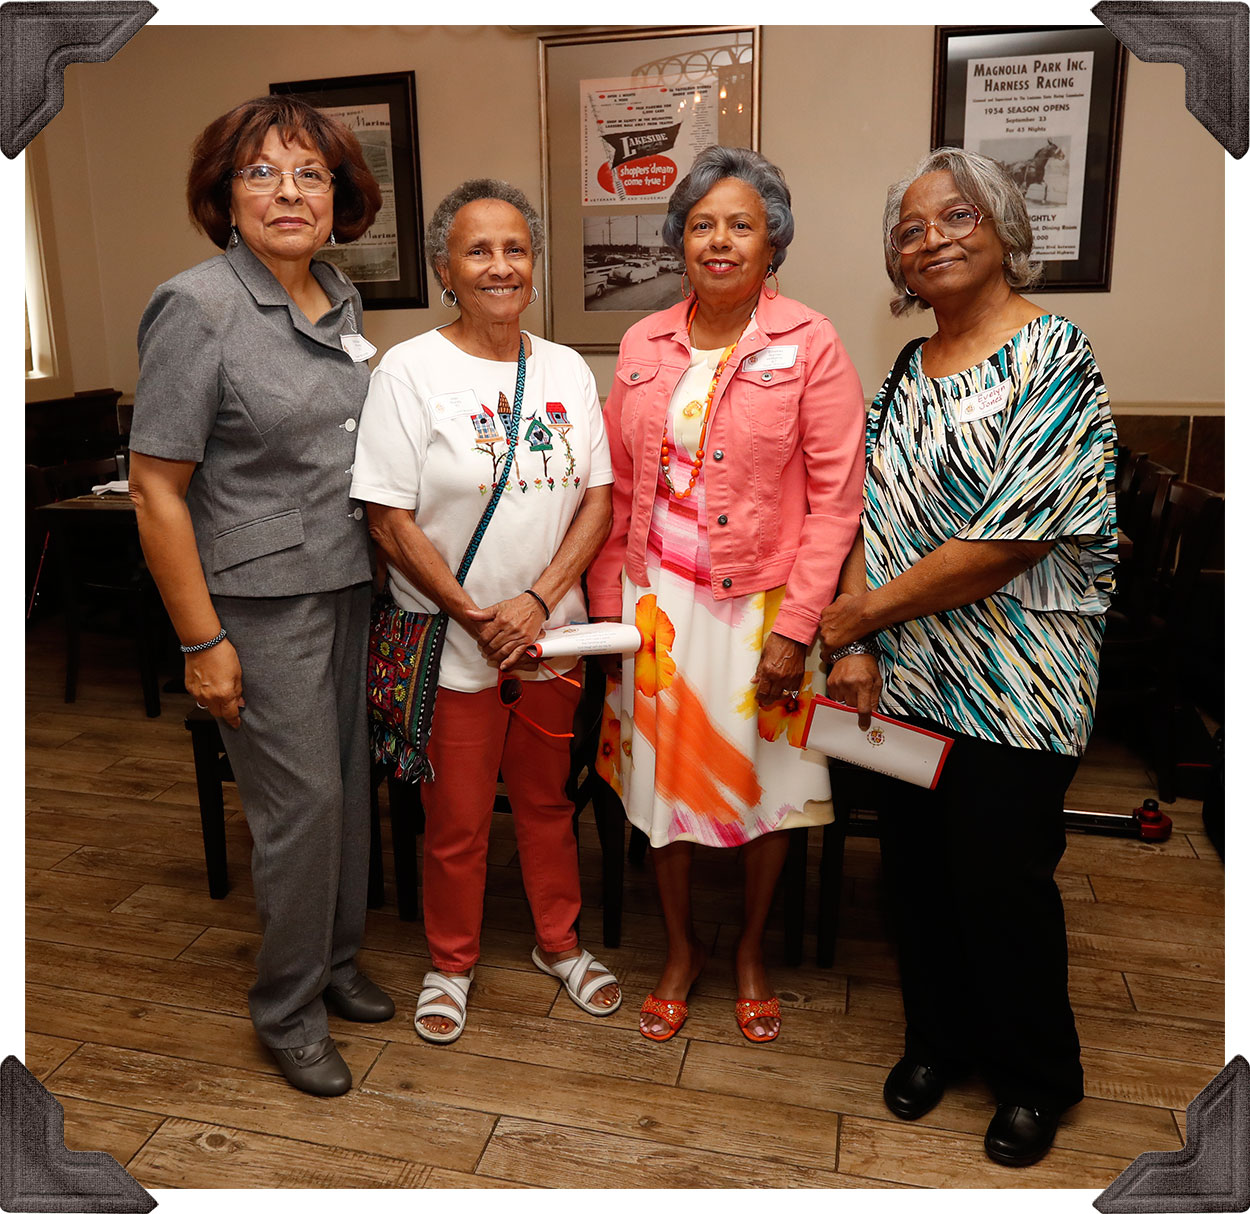 Class of '67 - Patrica Morris, Joan Bundy, Emelda Williams and Evelyn Jones